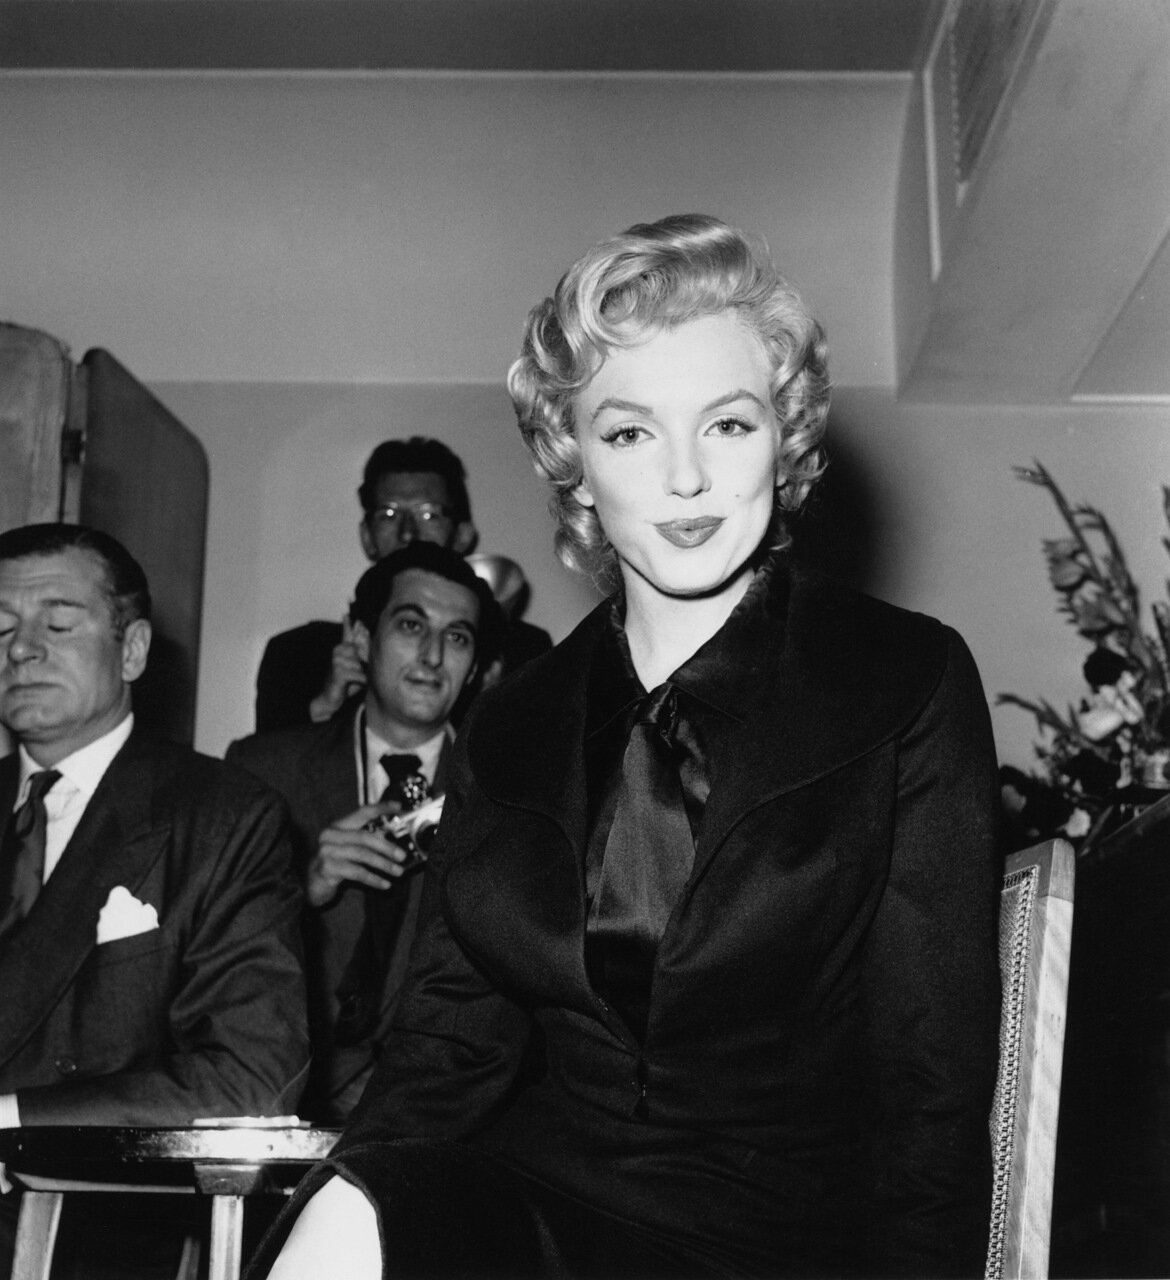 American actress Marilyn Monroe (1926 - 1962) at a press conference at the Savoy Hotel, London, July 1956. Monroe is in England to film 'The Prince and the Showgirl' with English actor and director Laurence Olivier (1907 - 1989, far left). (Photo by Harry